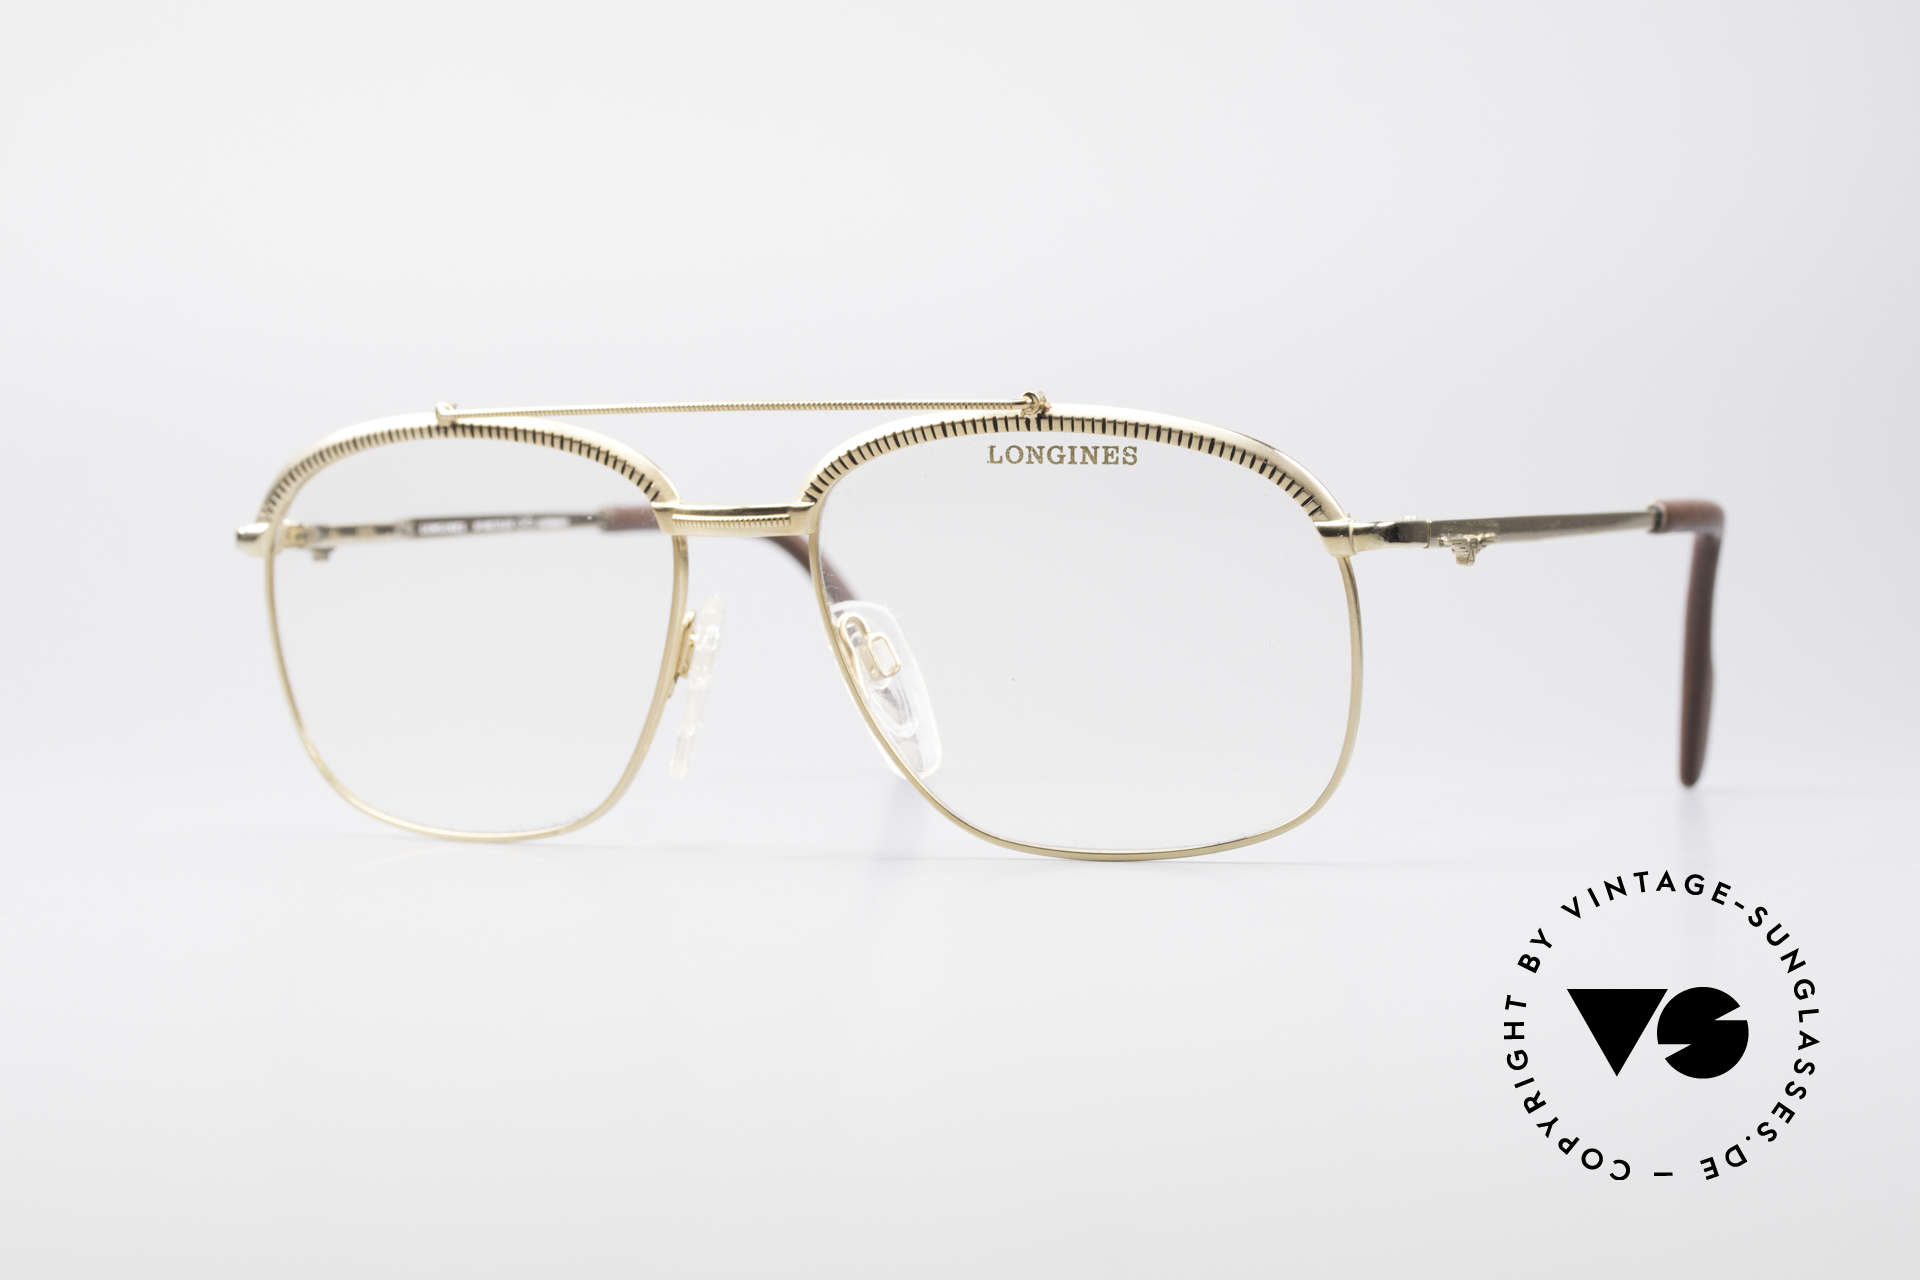 Longines 0172 80's Luxury Eyeglasses, very noble vintage eyeglasses by LONGINES from 1985, Made for Men